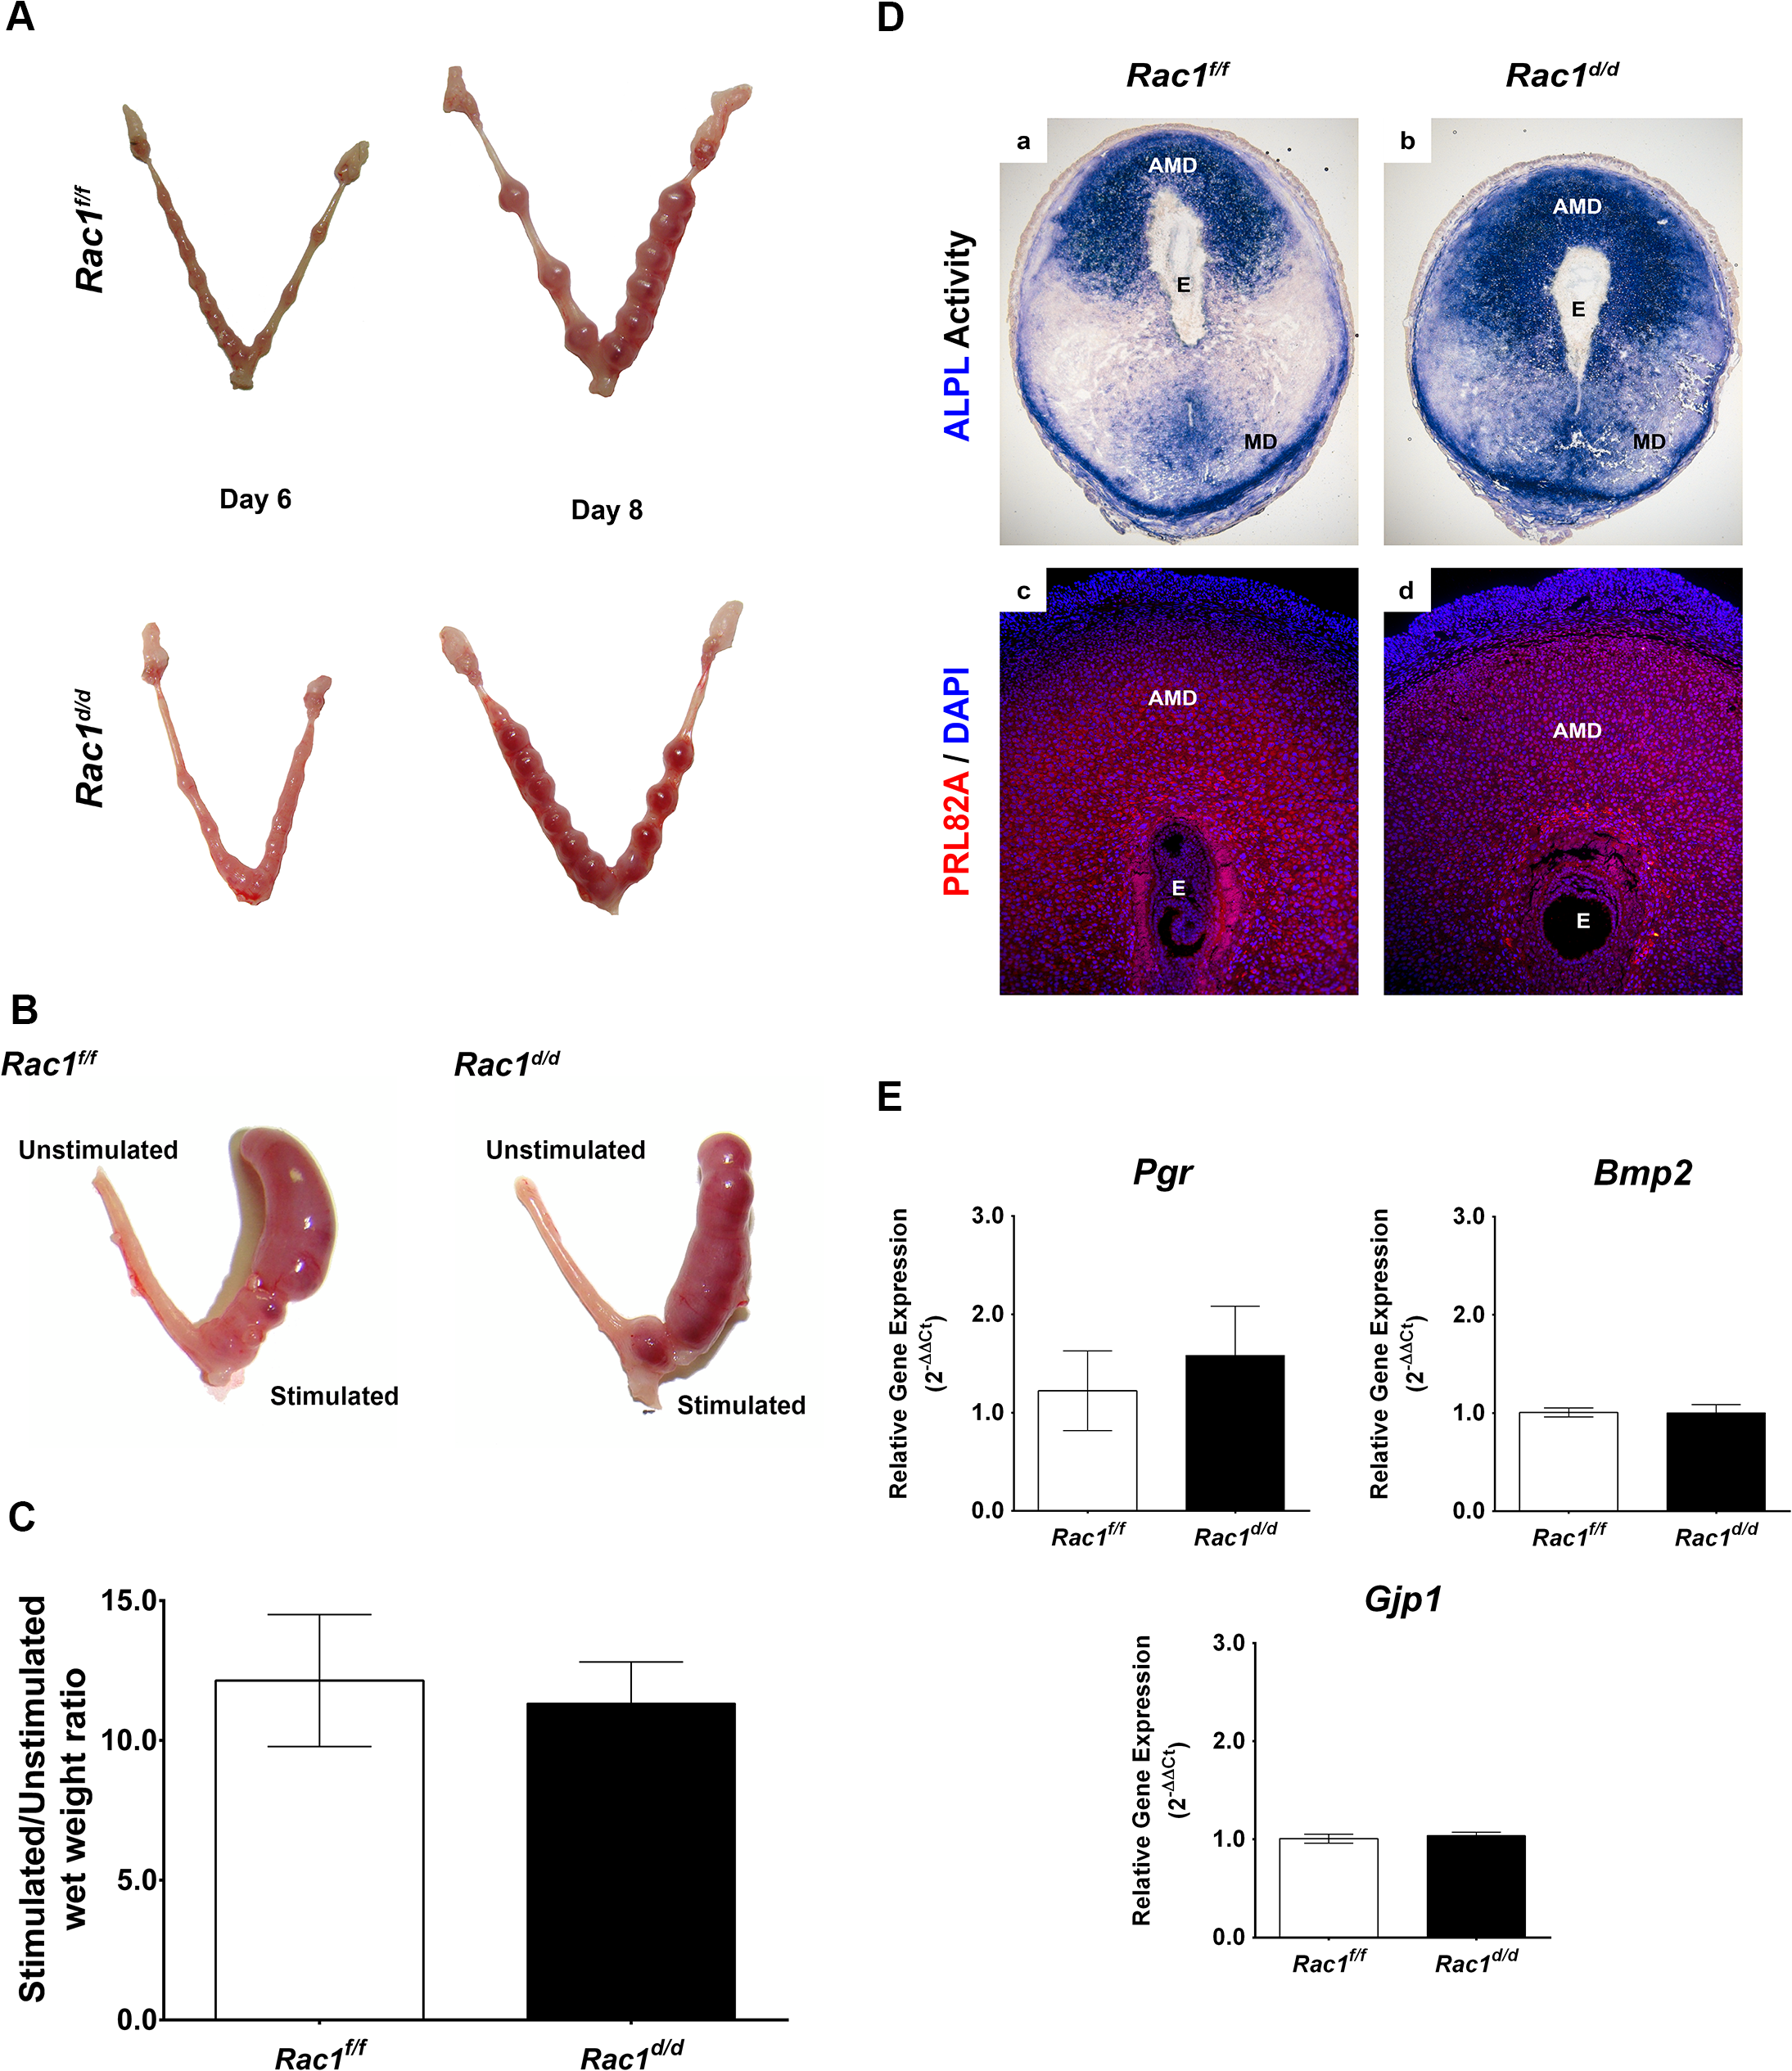 Early implantation is unaffected in <i>Rac1</i> conditional knockout mouse.